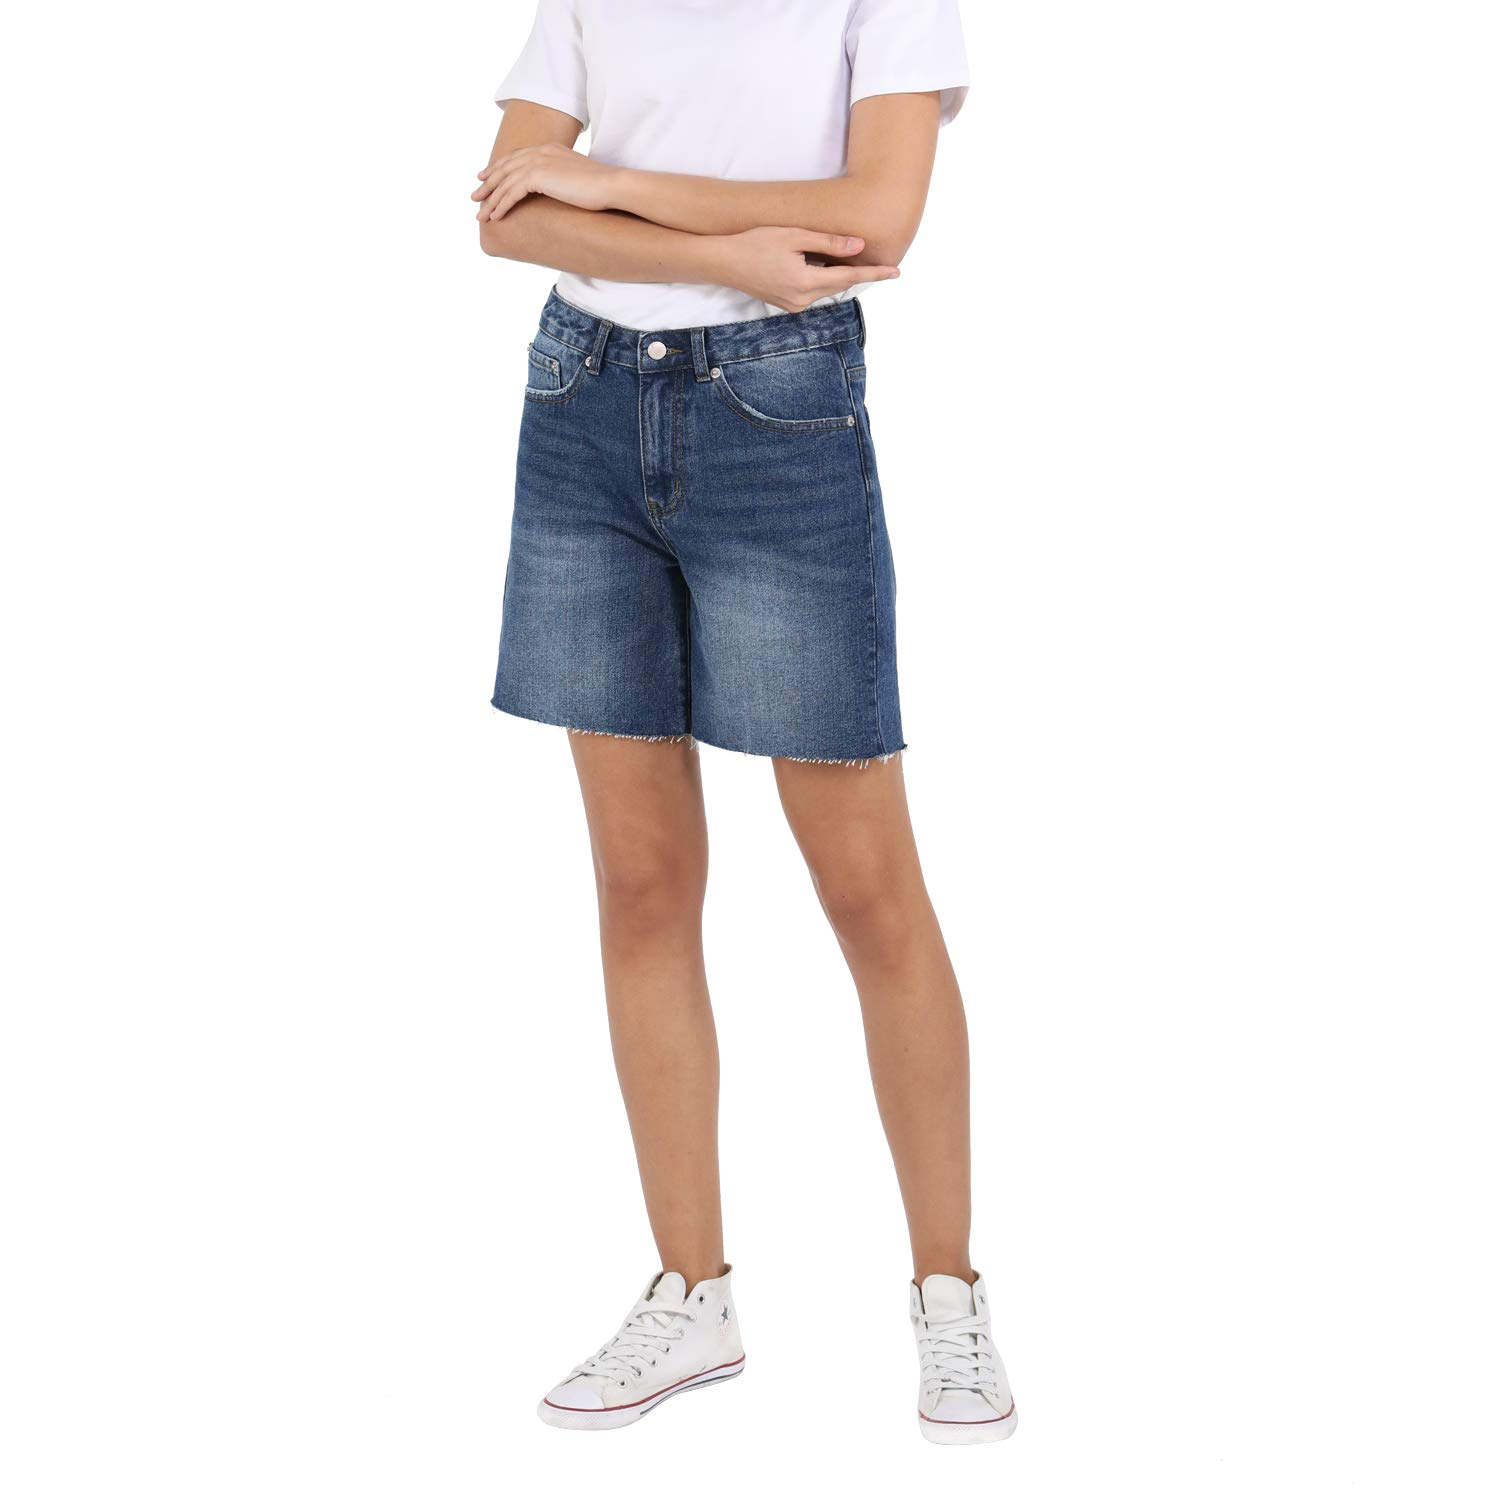 Womens High Waisted Denim Shorts Bermuda Shorts Hot Pants Shorts Inelasticity High Waist Trousers Boyfriend Look Jeans Short Casual Shorts Blue